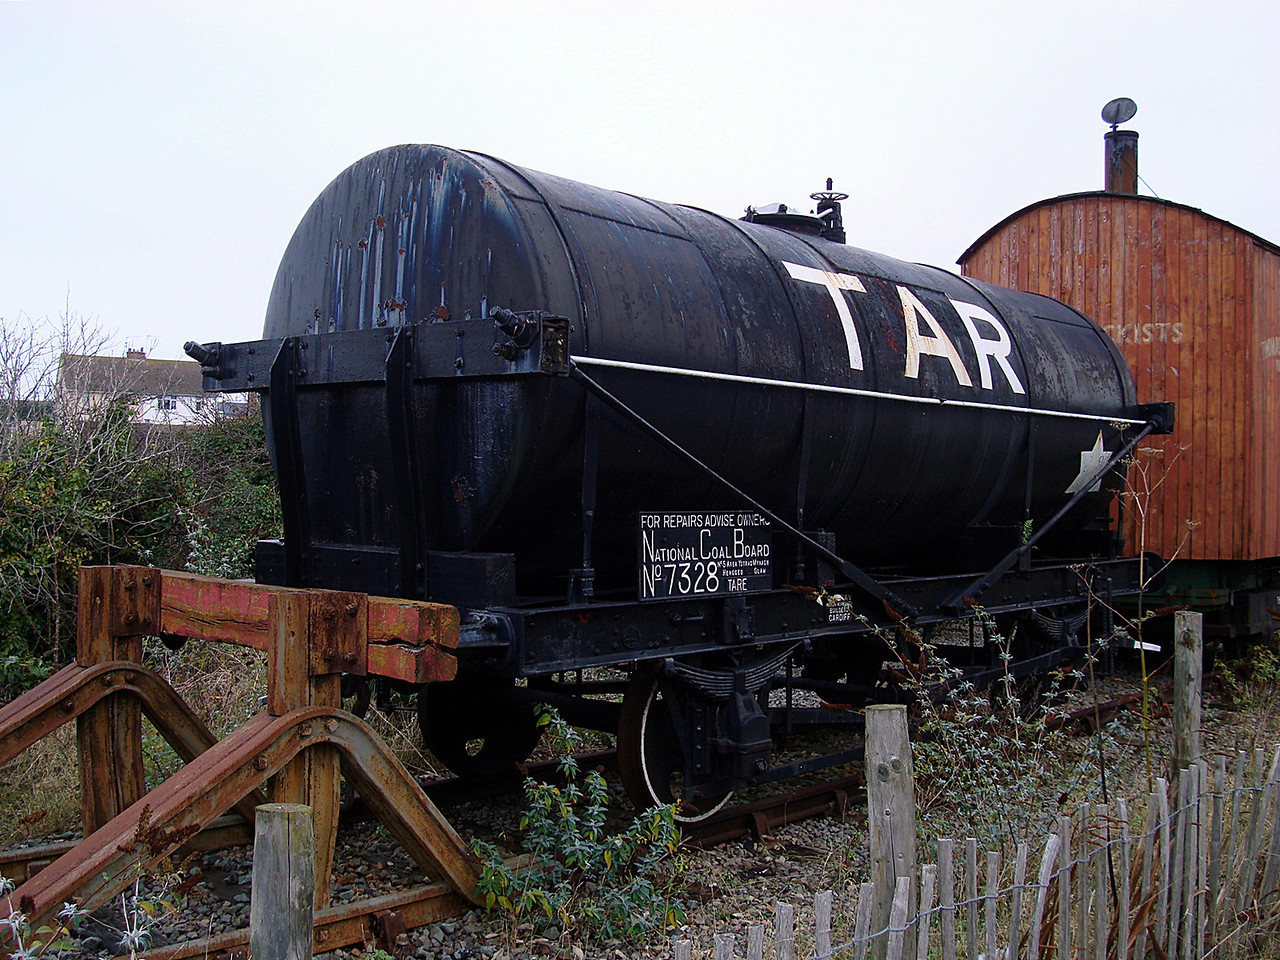 PO 7328 22t 4w Tar Tank 29,11,2008. (Now At The National Museum Of Wales)